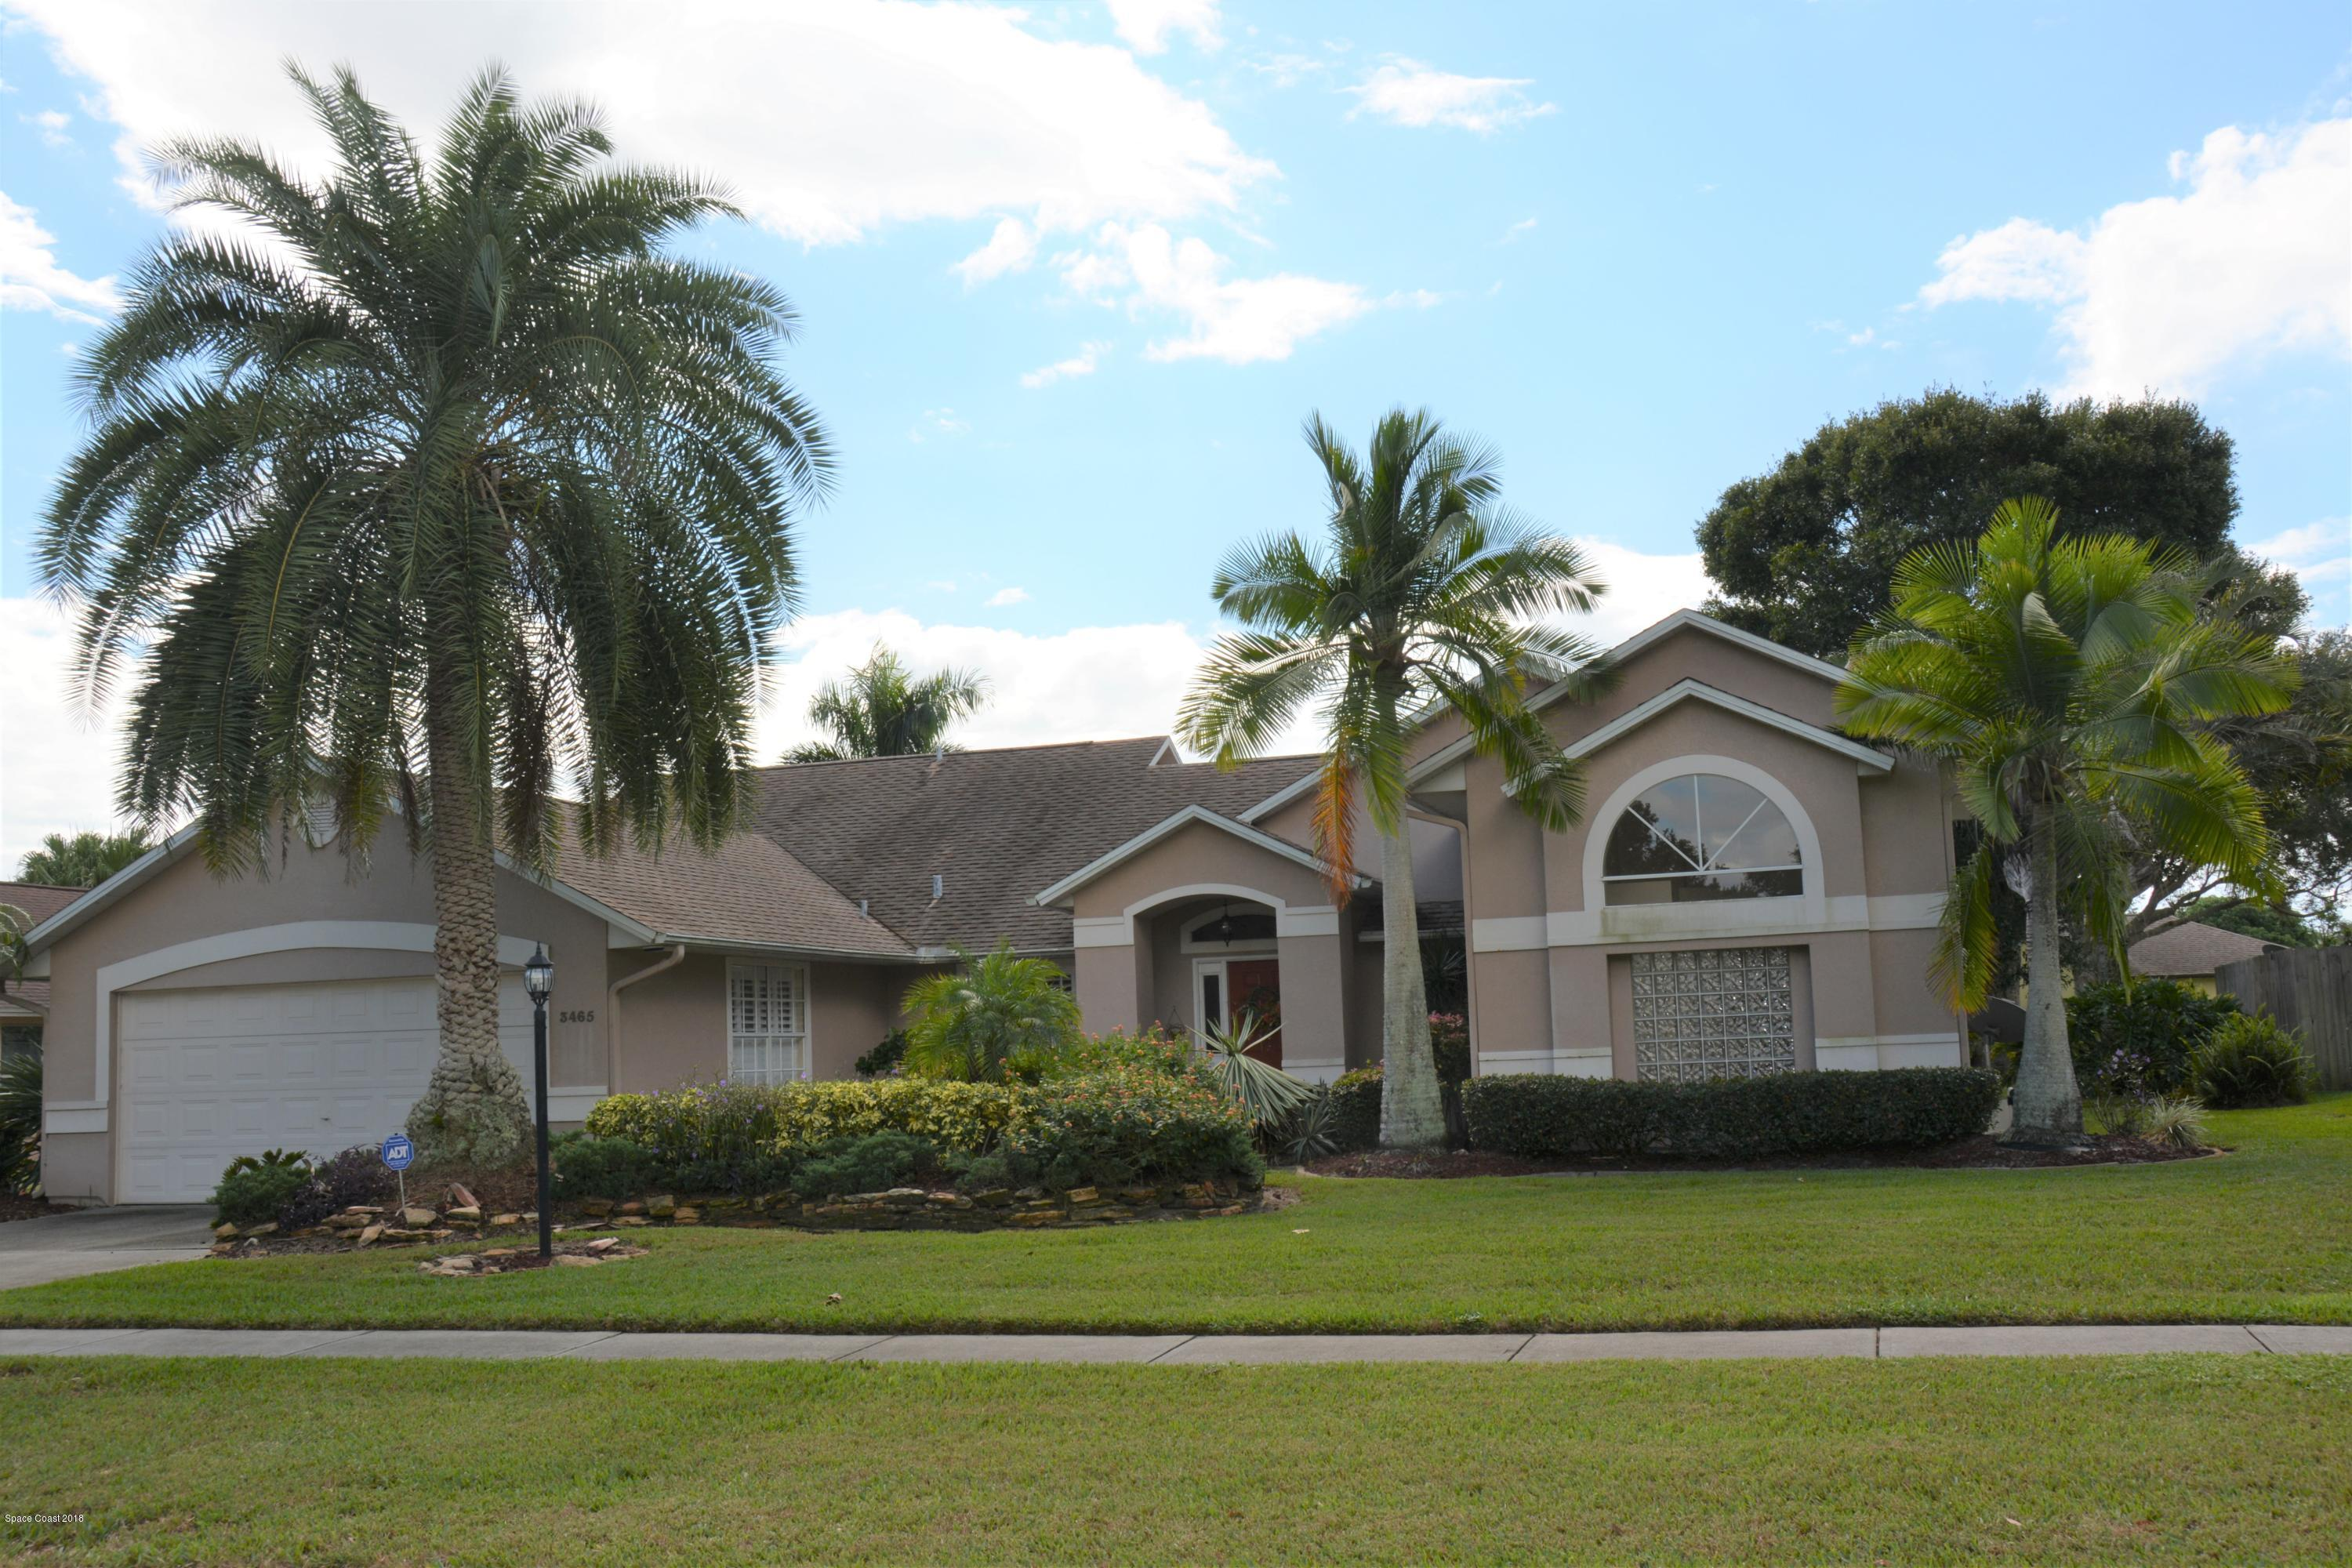 Single Family Home for Sale at 3465 Fort Sumter 3465 Fort Sumter Melbourne, Florida 32934 United States